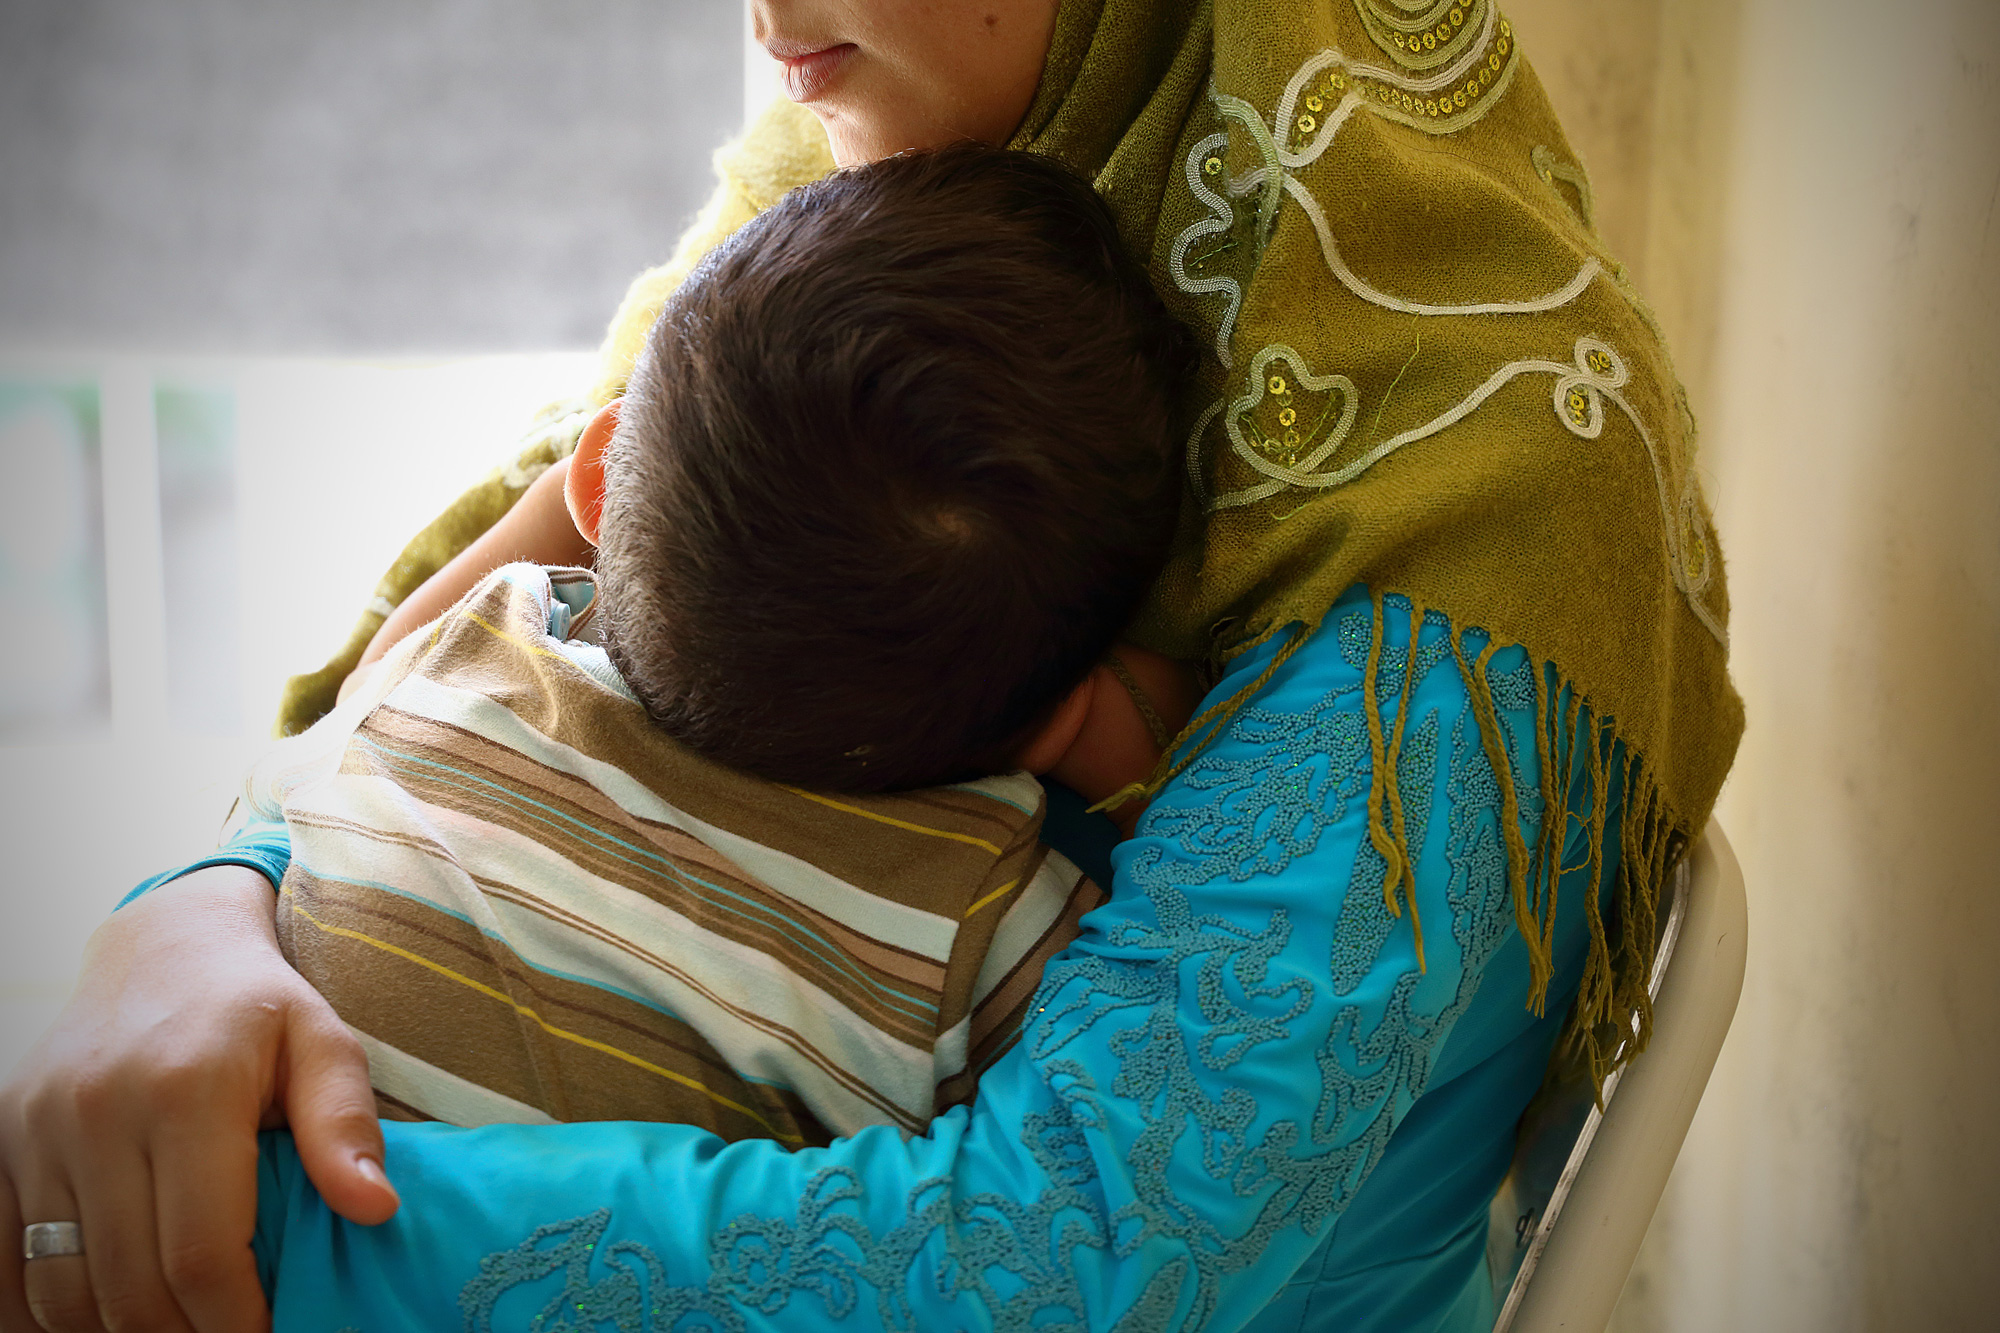 Syrian Refugee mother and child in Europe